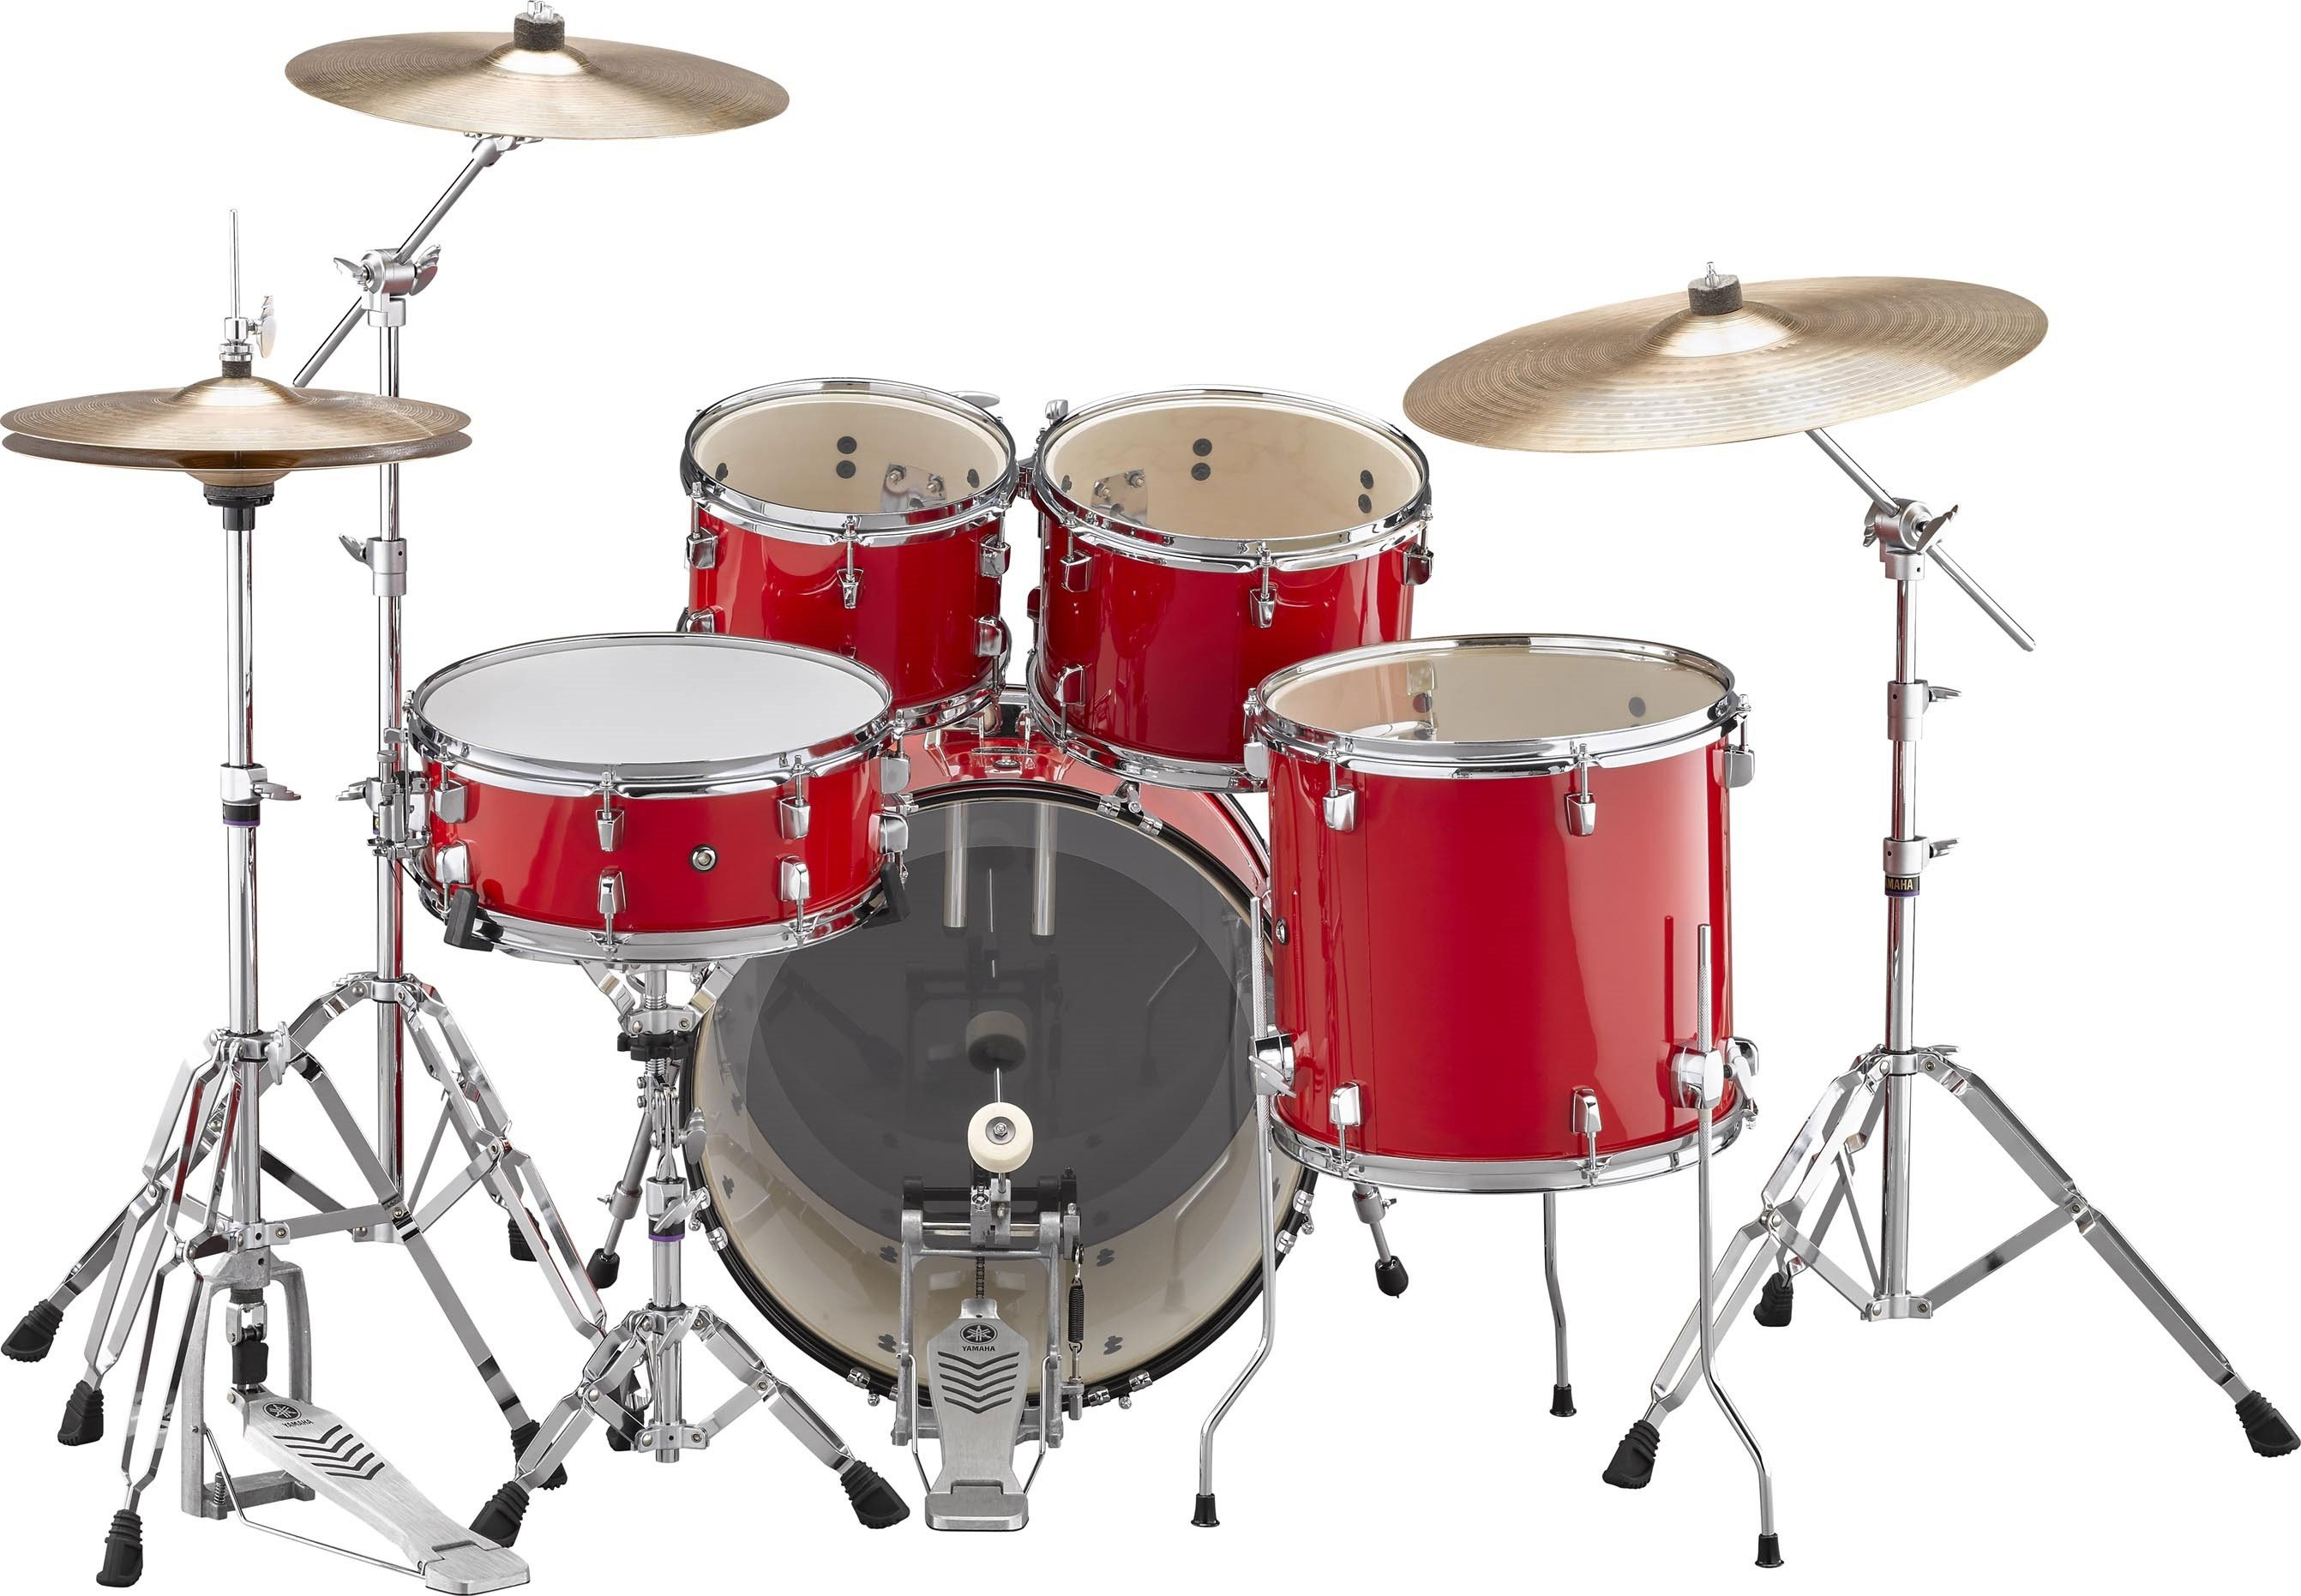 Yamaha Rydeen Drum Kit With 20 Quot Kick Drum Amp Cymbals In Hot